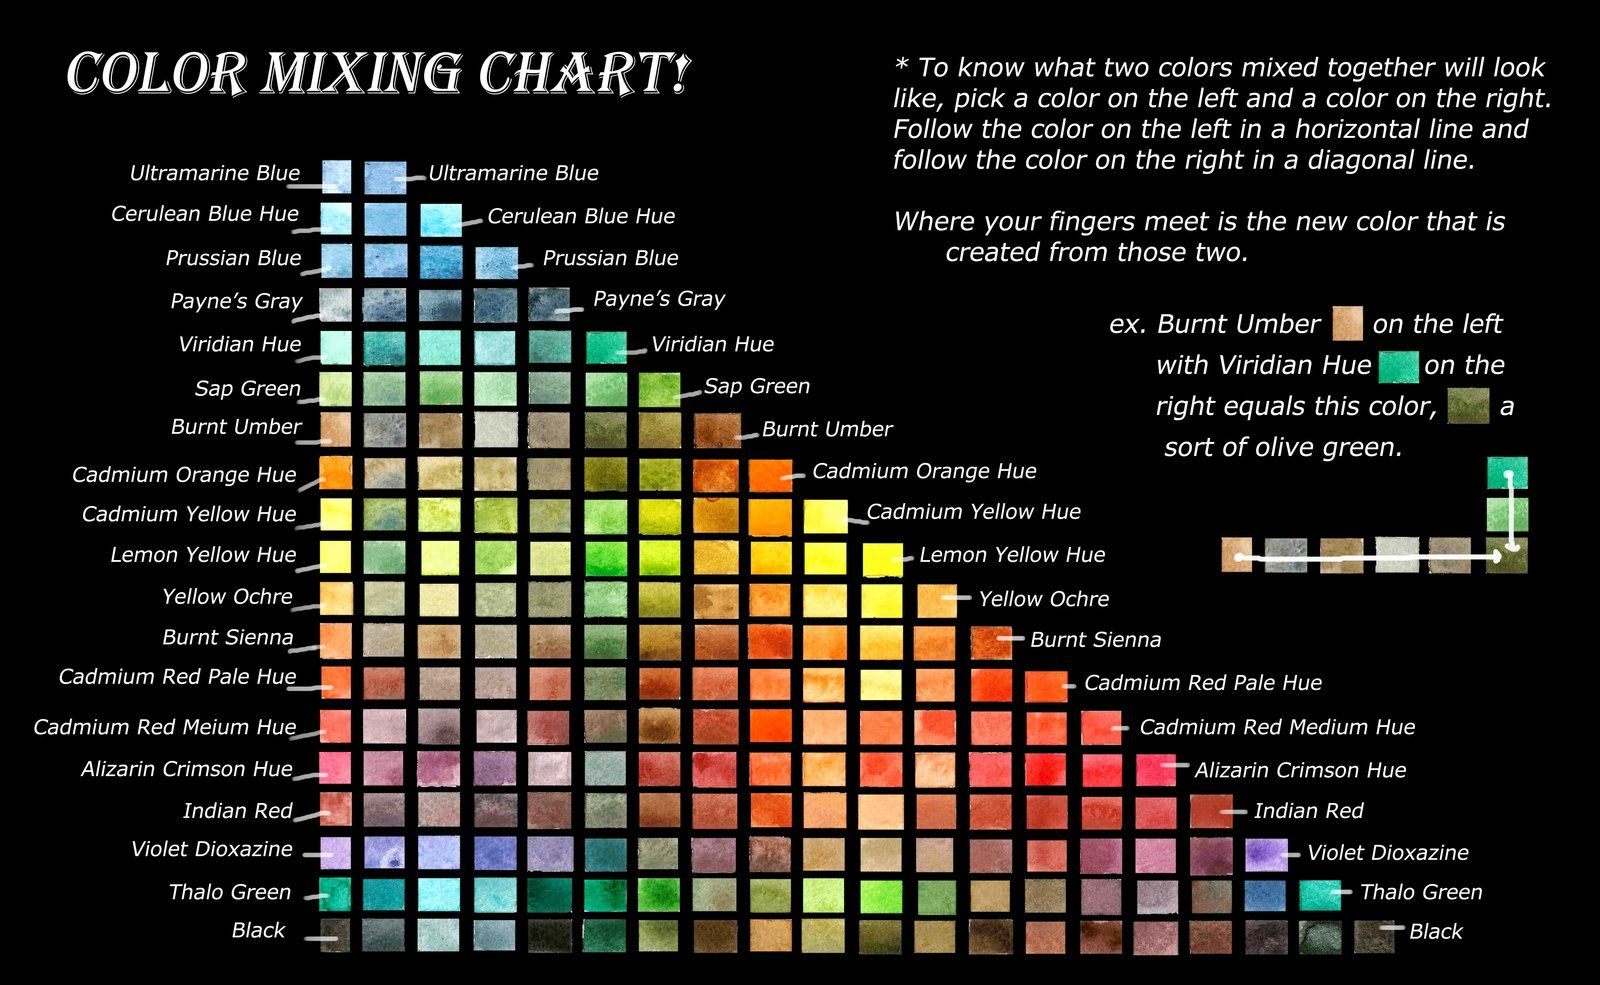 mixing acrylic paint colours chart - Google Search | Art ...